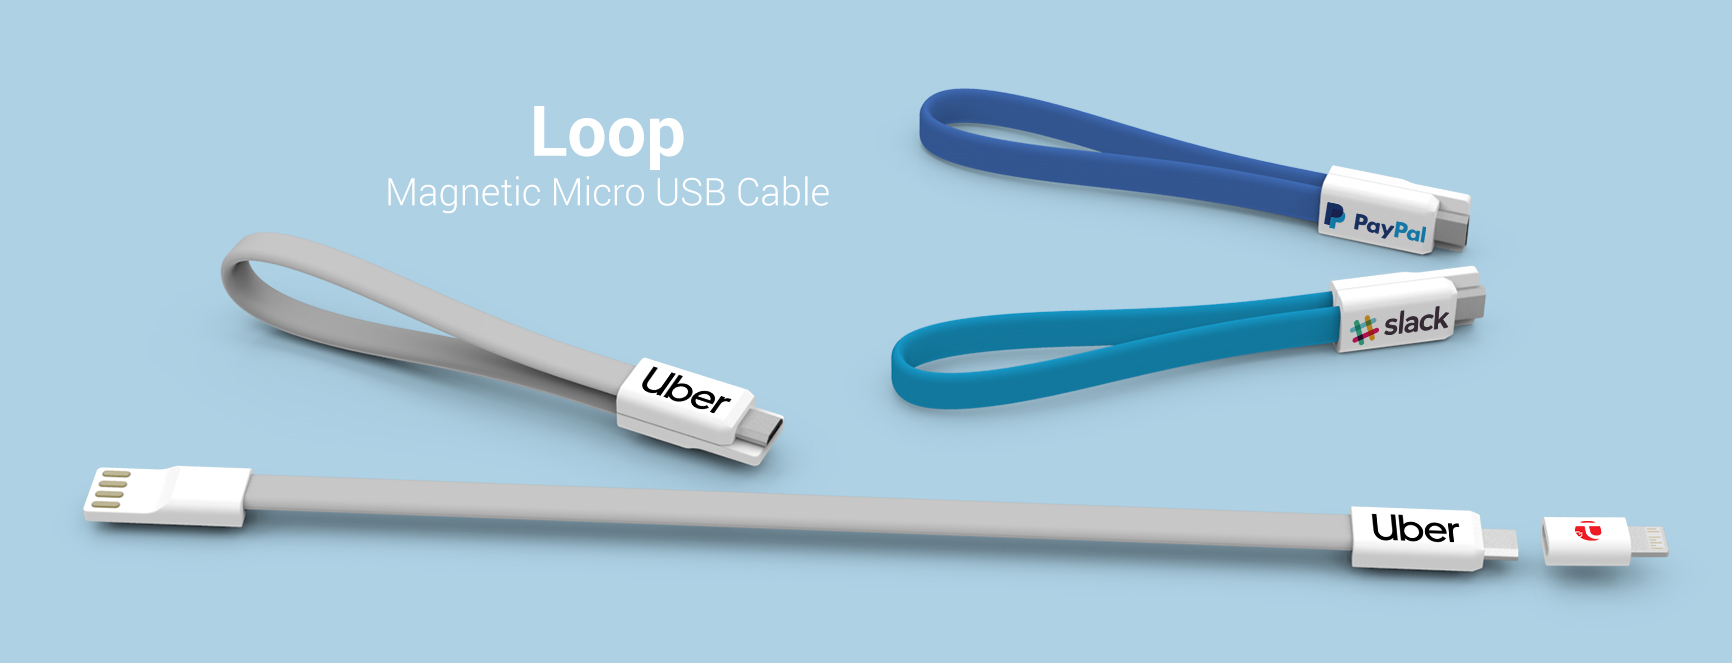 Loop: Magnetic Micro USB Cable – Powerstick.com